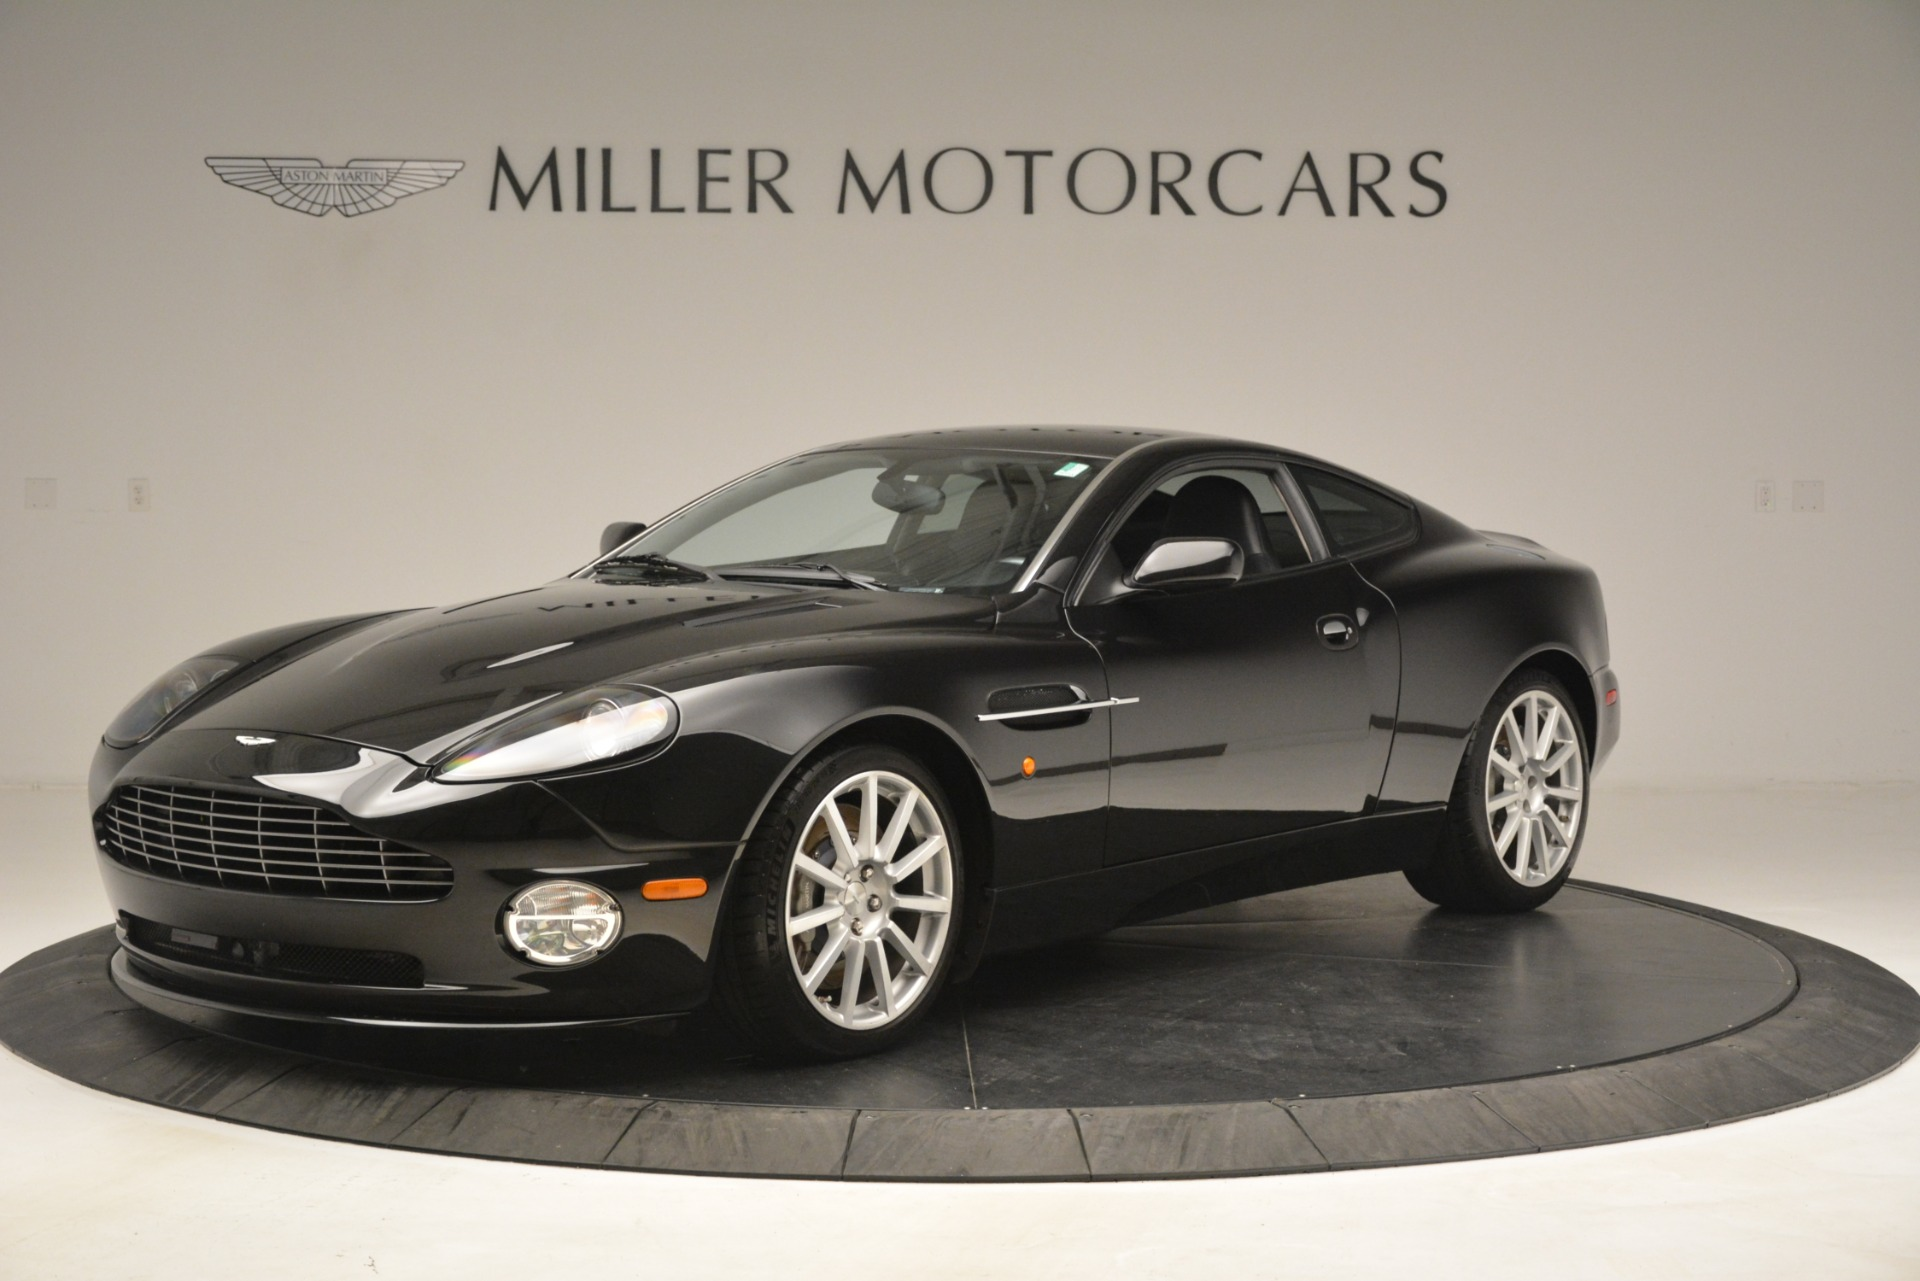 Used 2005 Aston Martin V12 Vanquish S Coupe For Sale In Greenwich, CT 3218_main